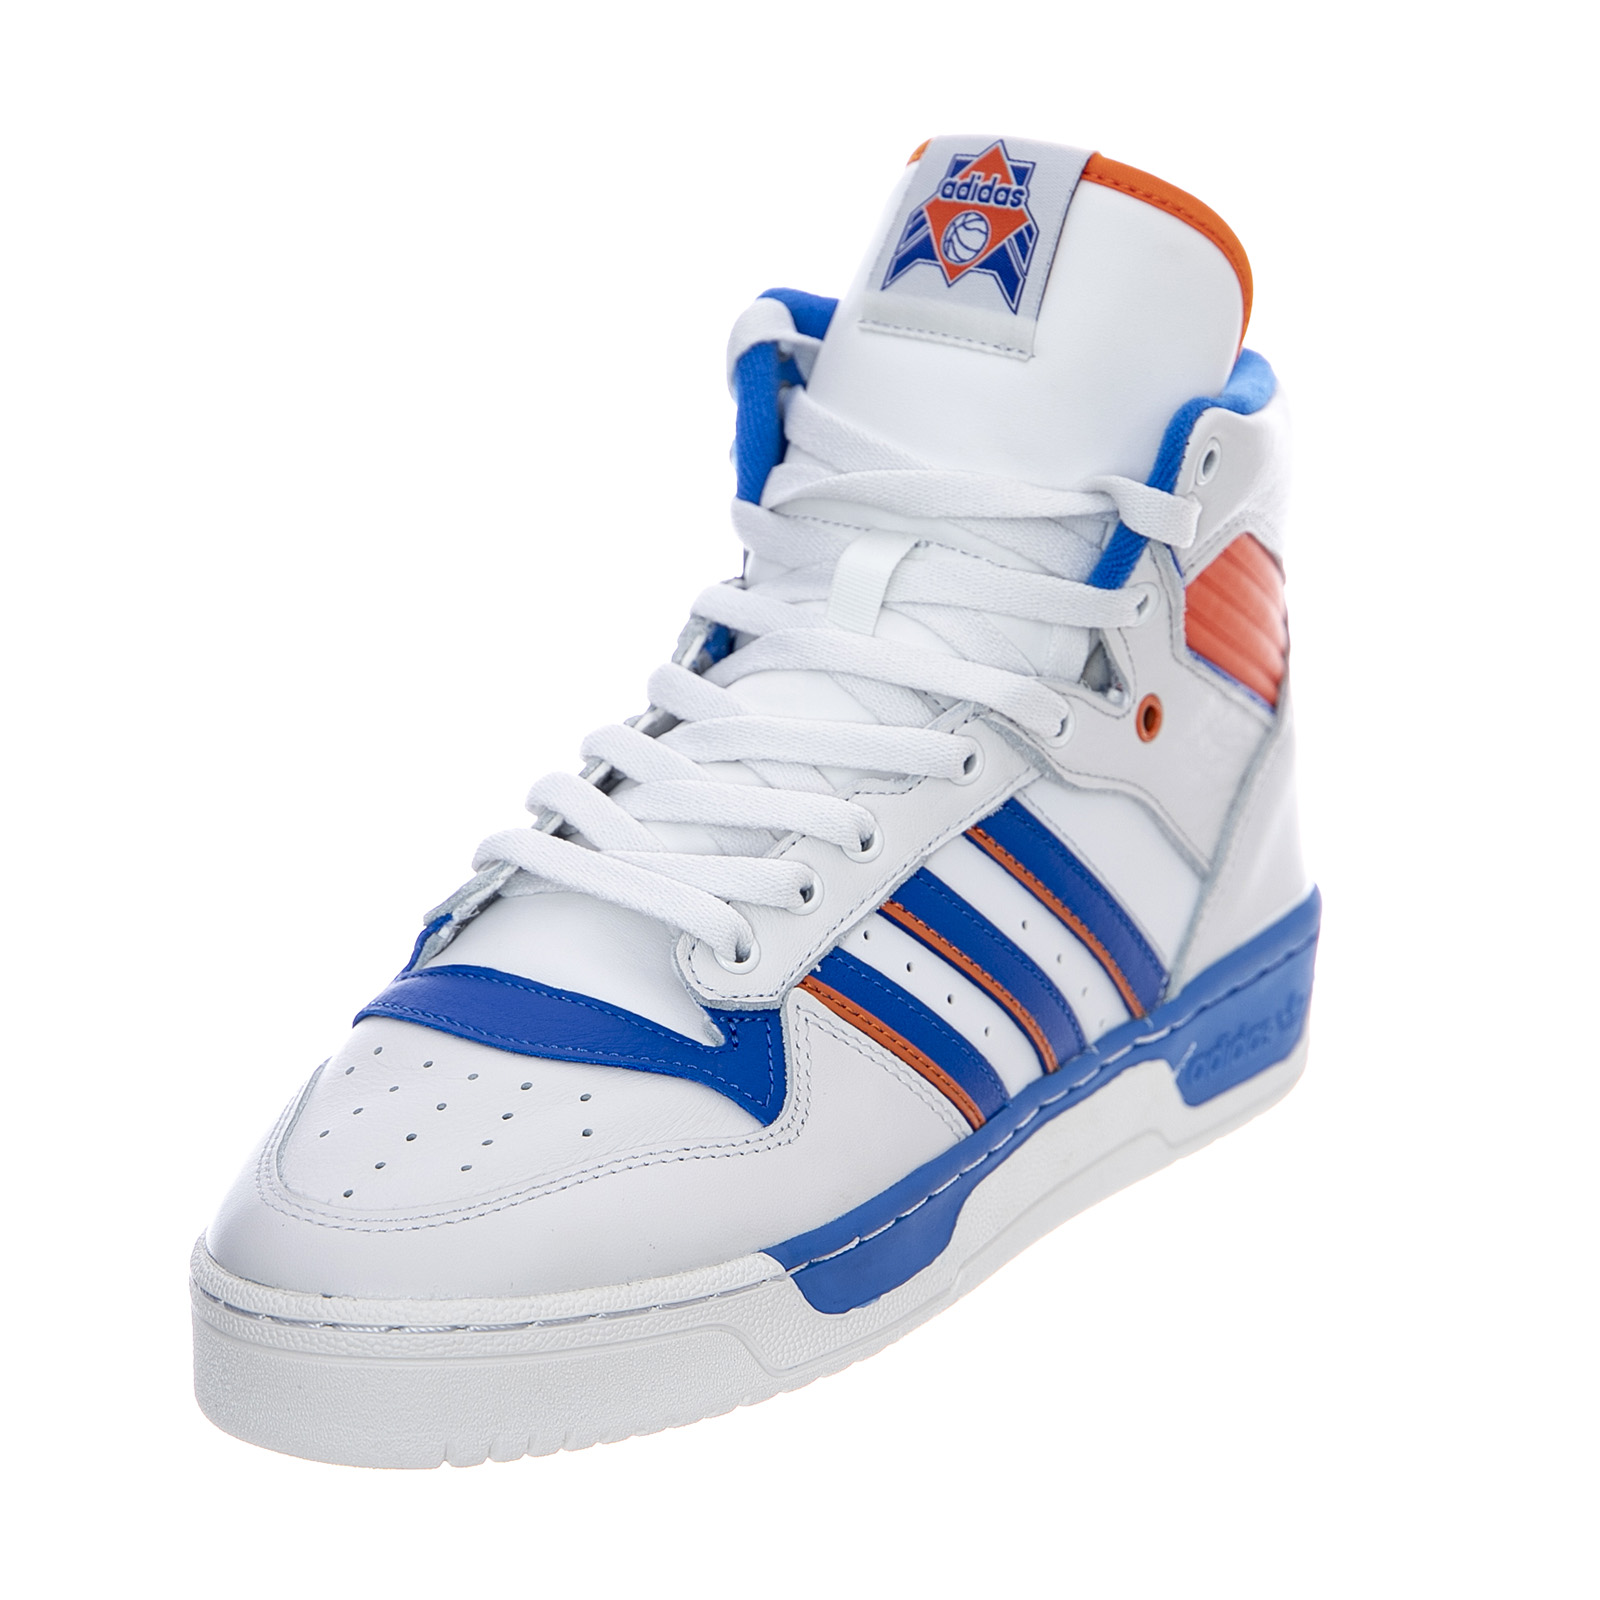 23595df0fb Adidas Rivalry - White/Blue/Orange - Sneakers Alte Uomo Multicolor ...